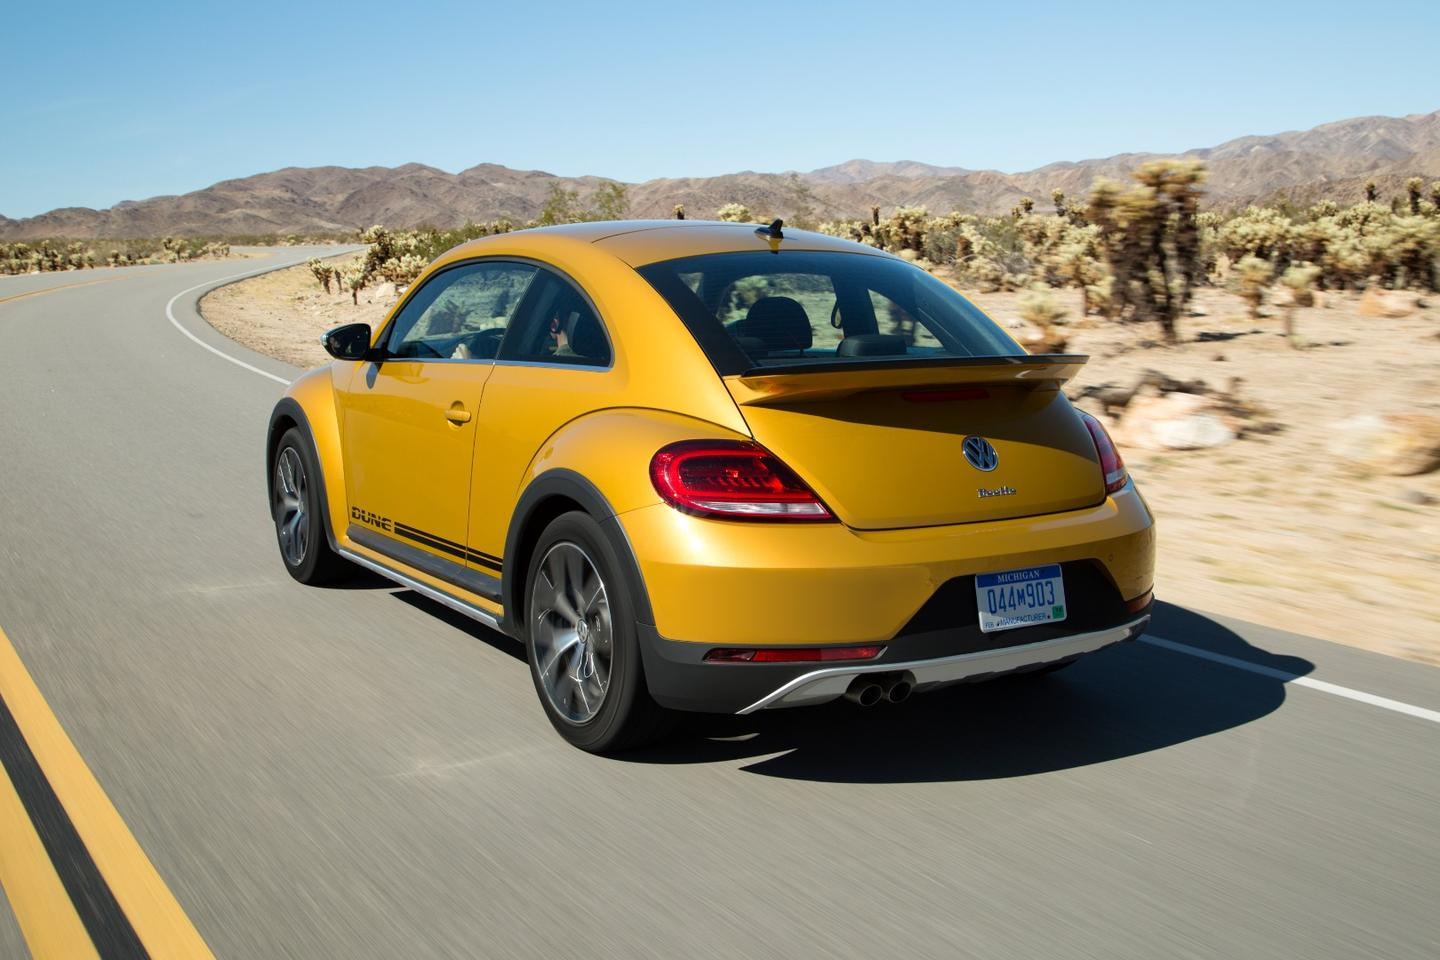 The Beetle Dune has a bigger rear spoiler to set it apart from garden-variety Bugs on the road